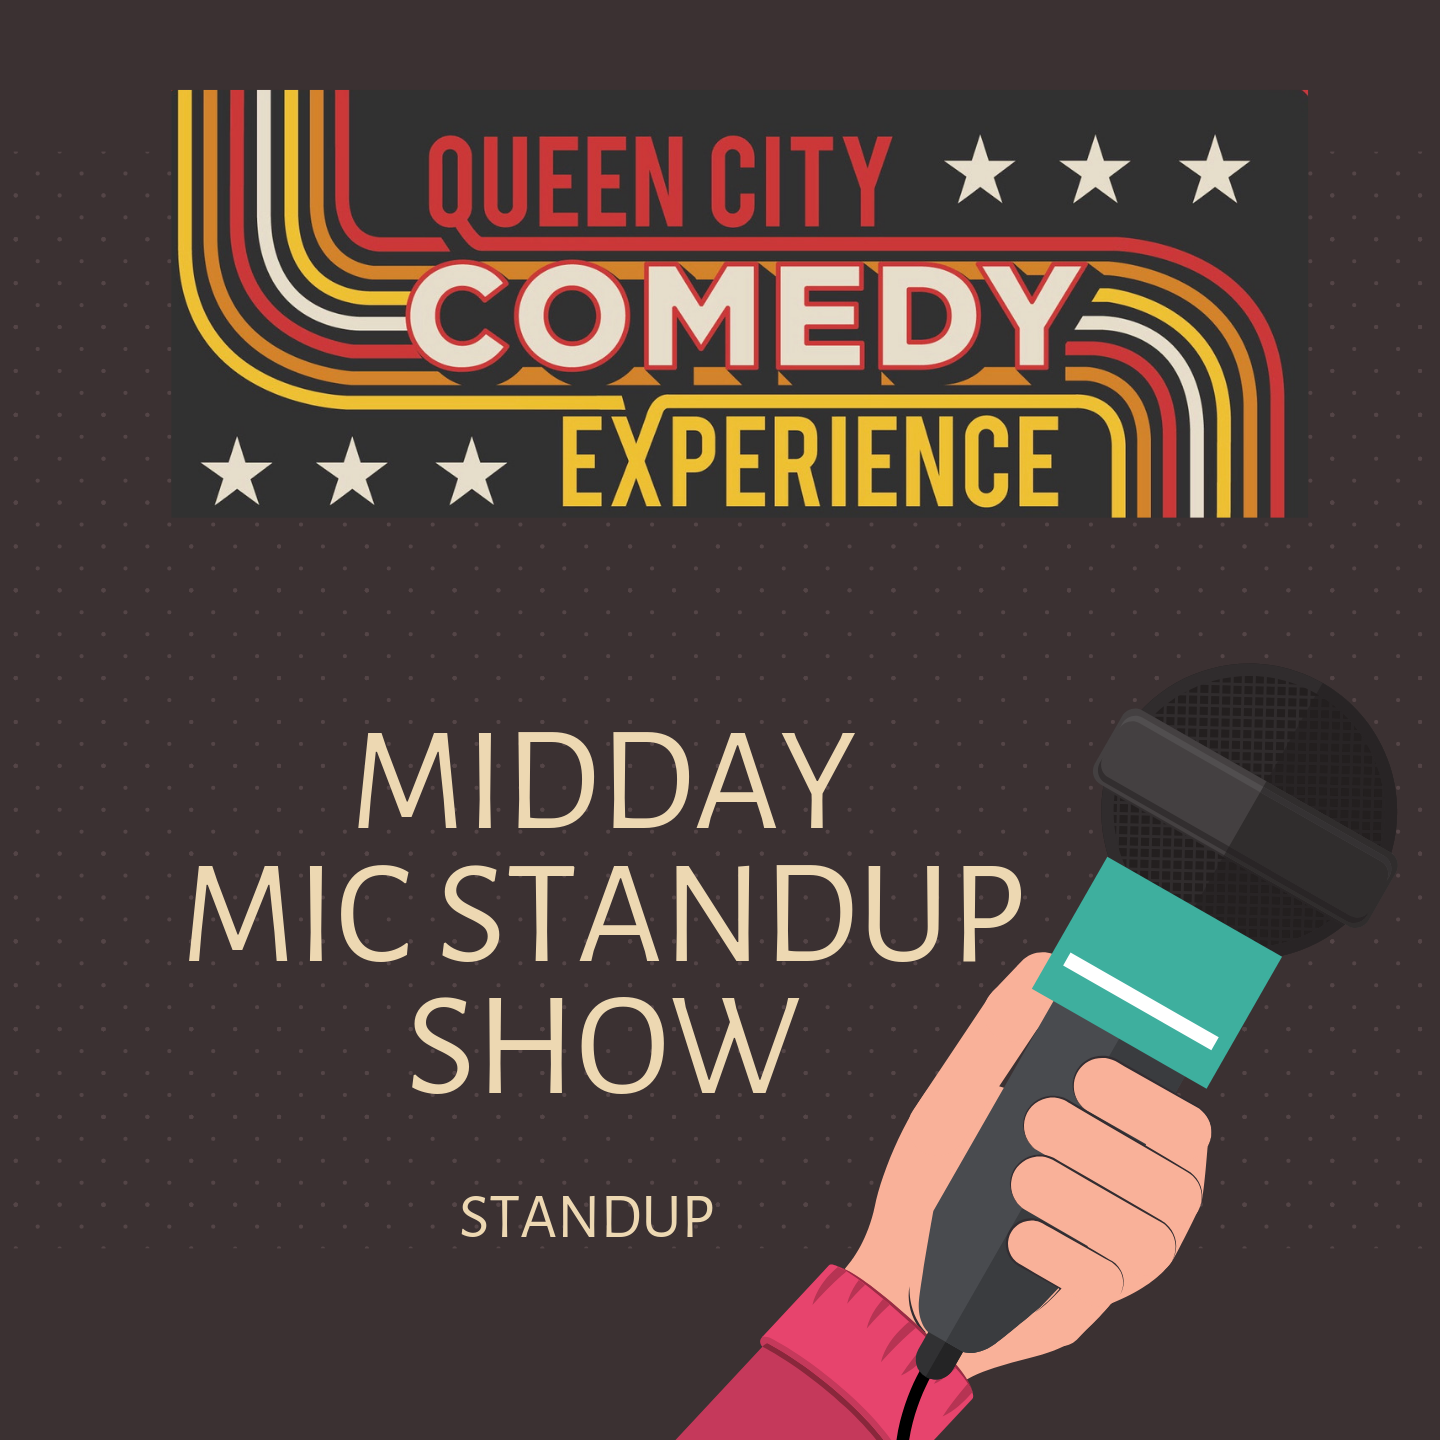 Midday Mic Stand Up